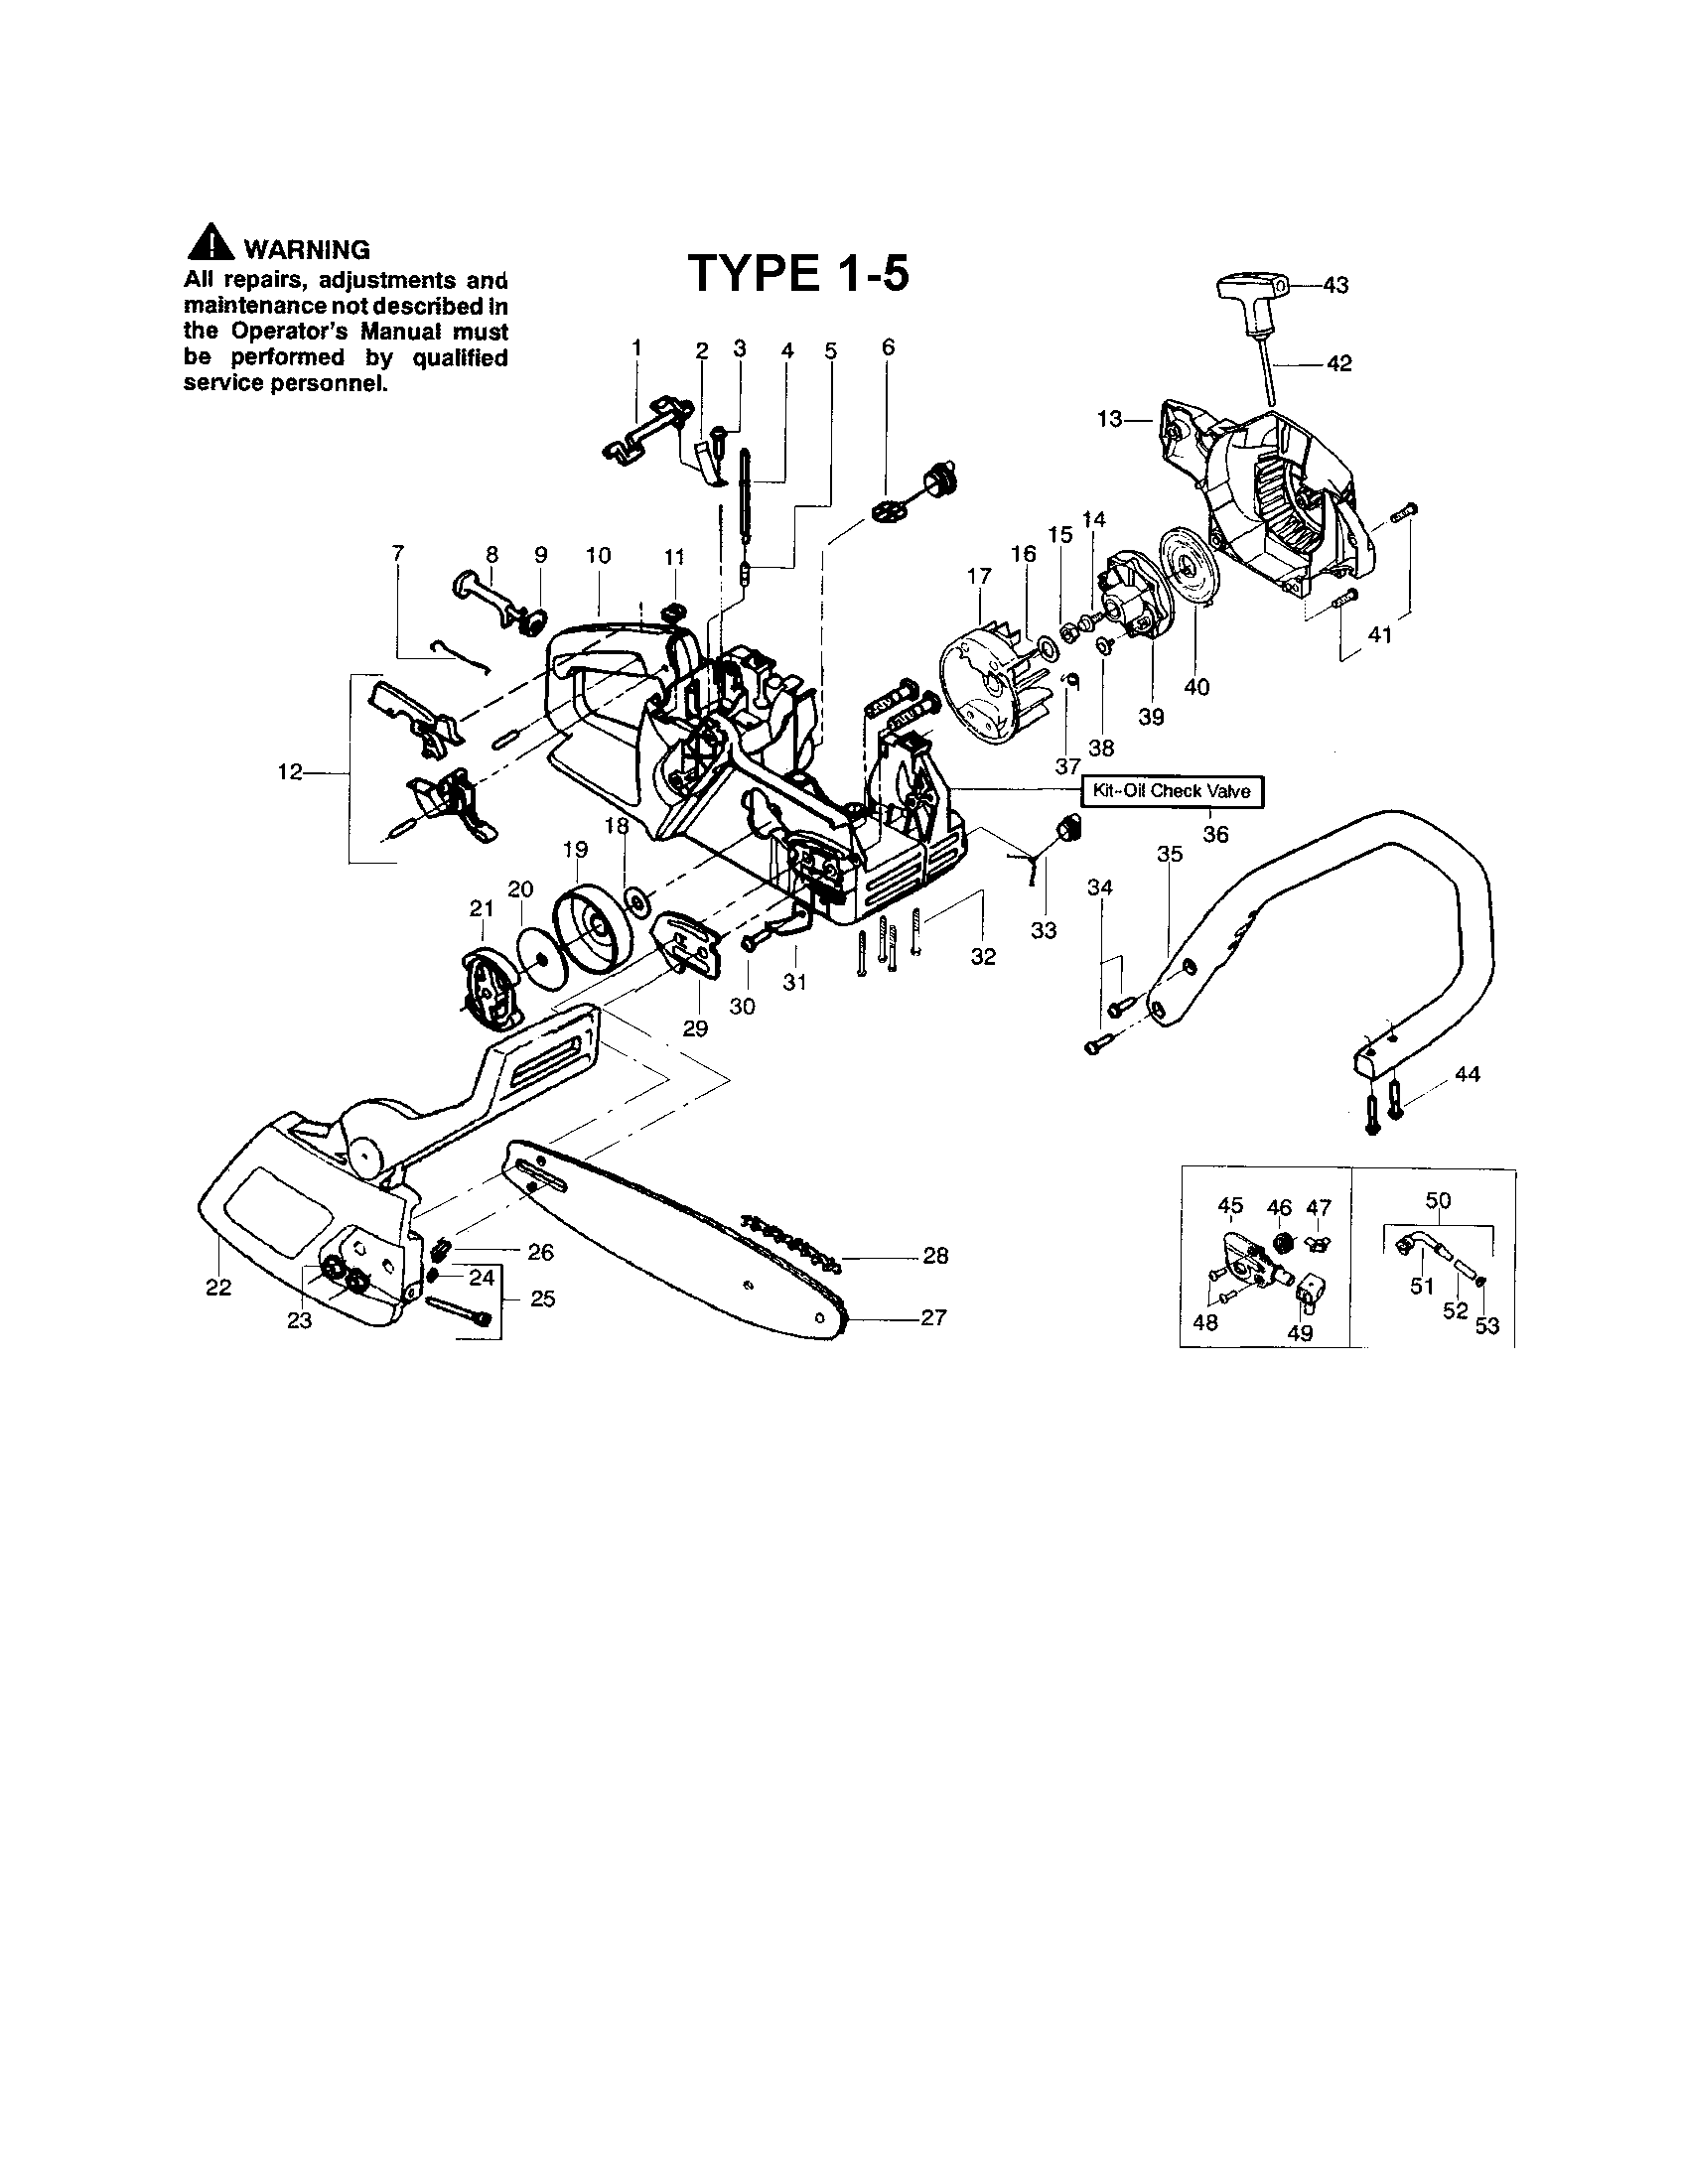 BLADE Diagram & Parts List for Model 1975type15 Poulan